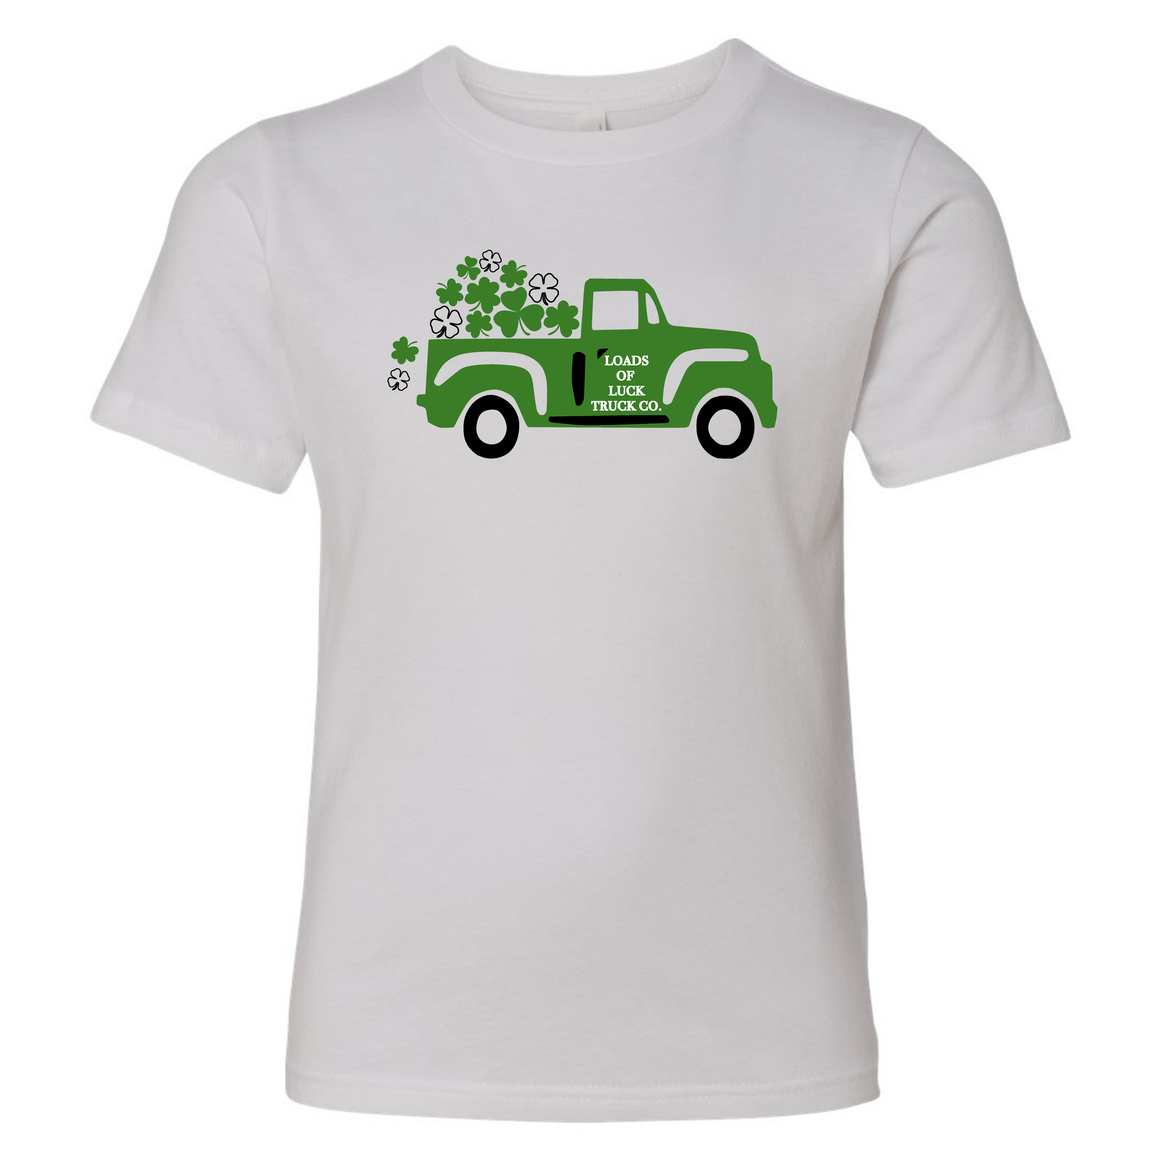 Lucky Truck Co. T-Shirt (Toddler and Youth)